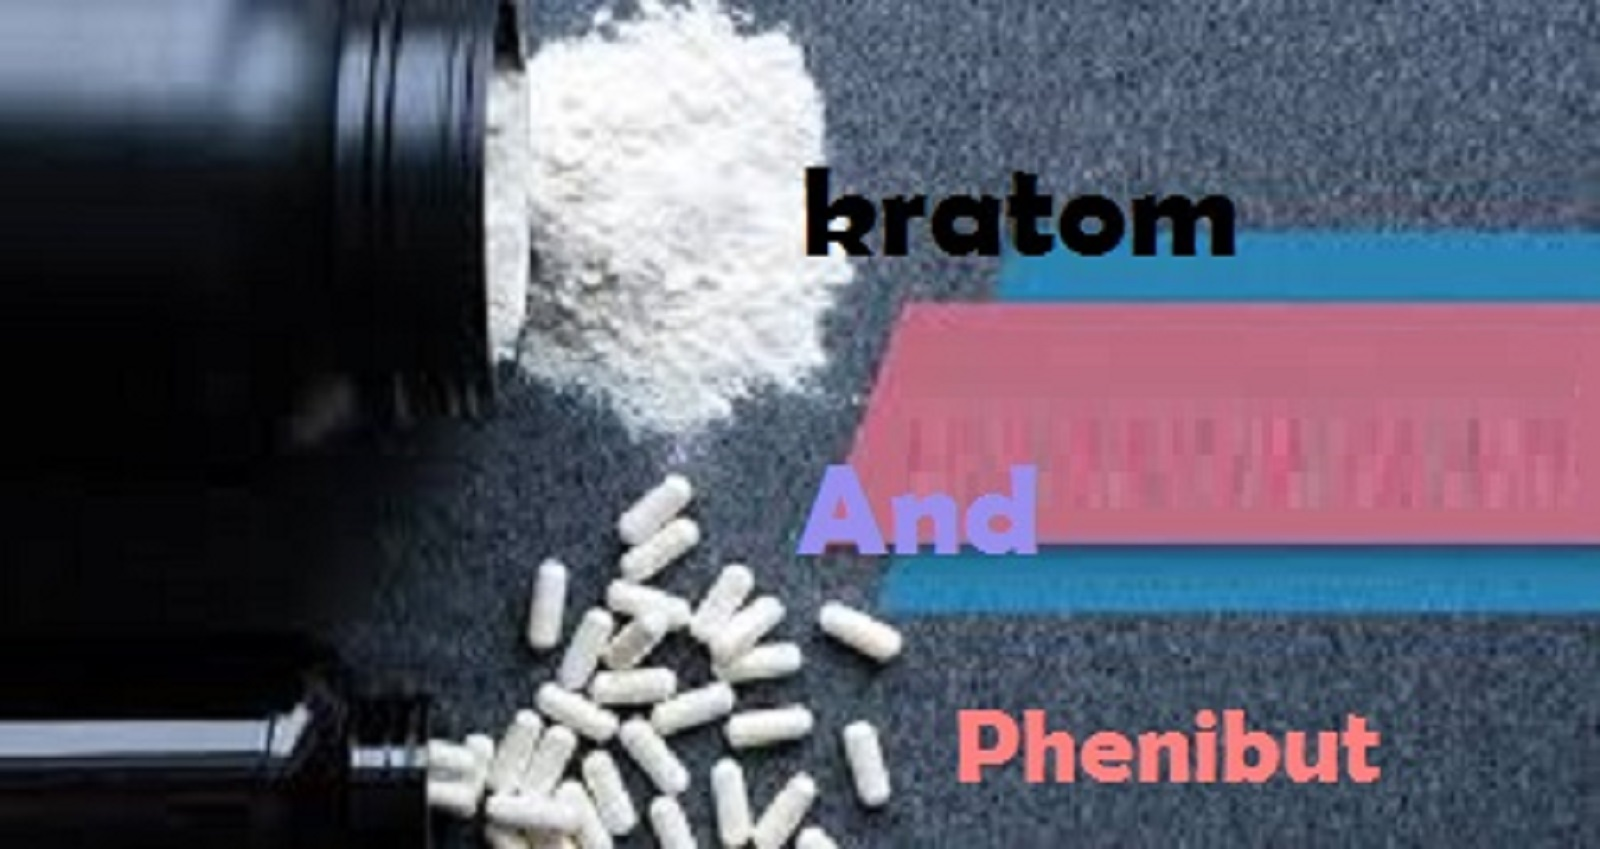 Phenibut And Kratom - Enlightening Combo Facts And Guidelines